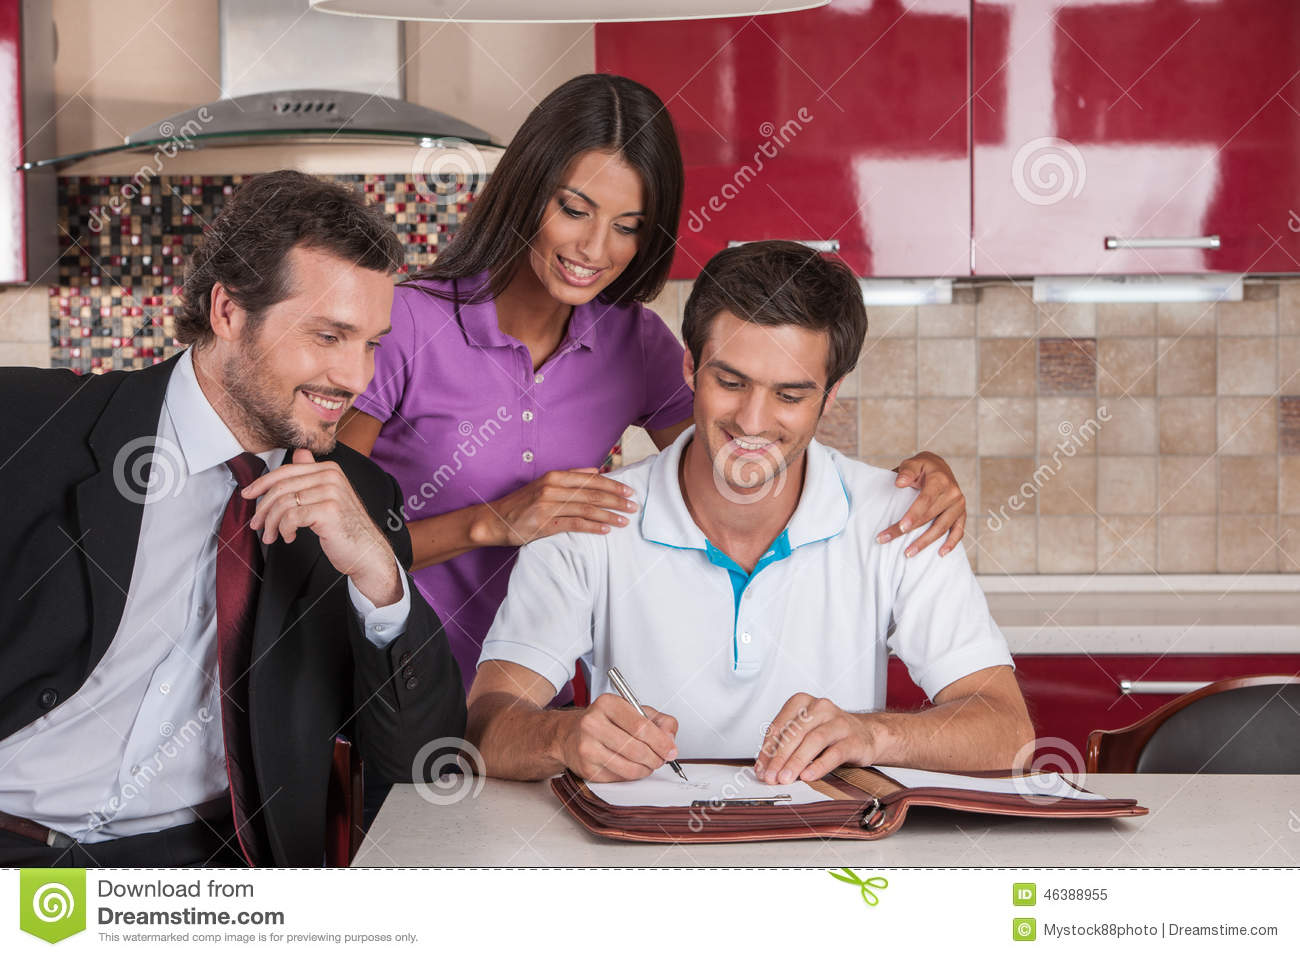 Closeup on happy man signing agreement on new house.